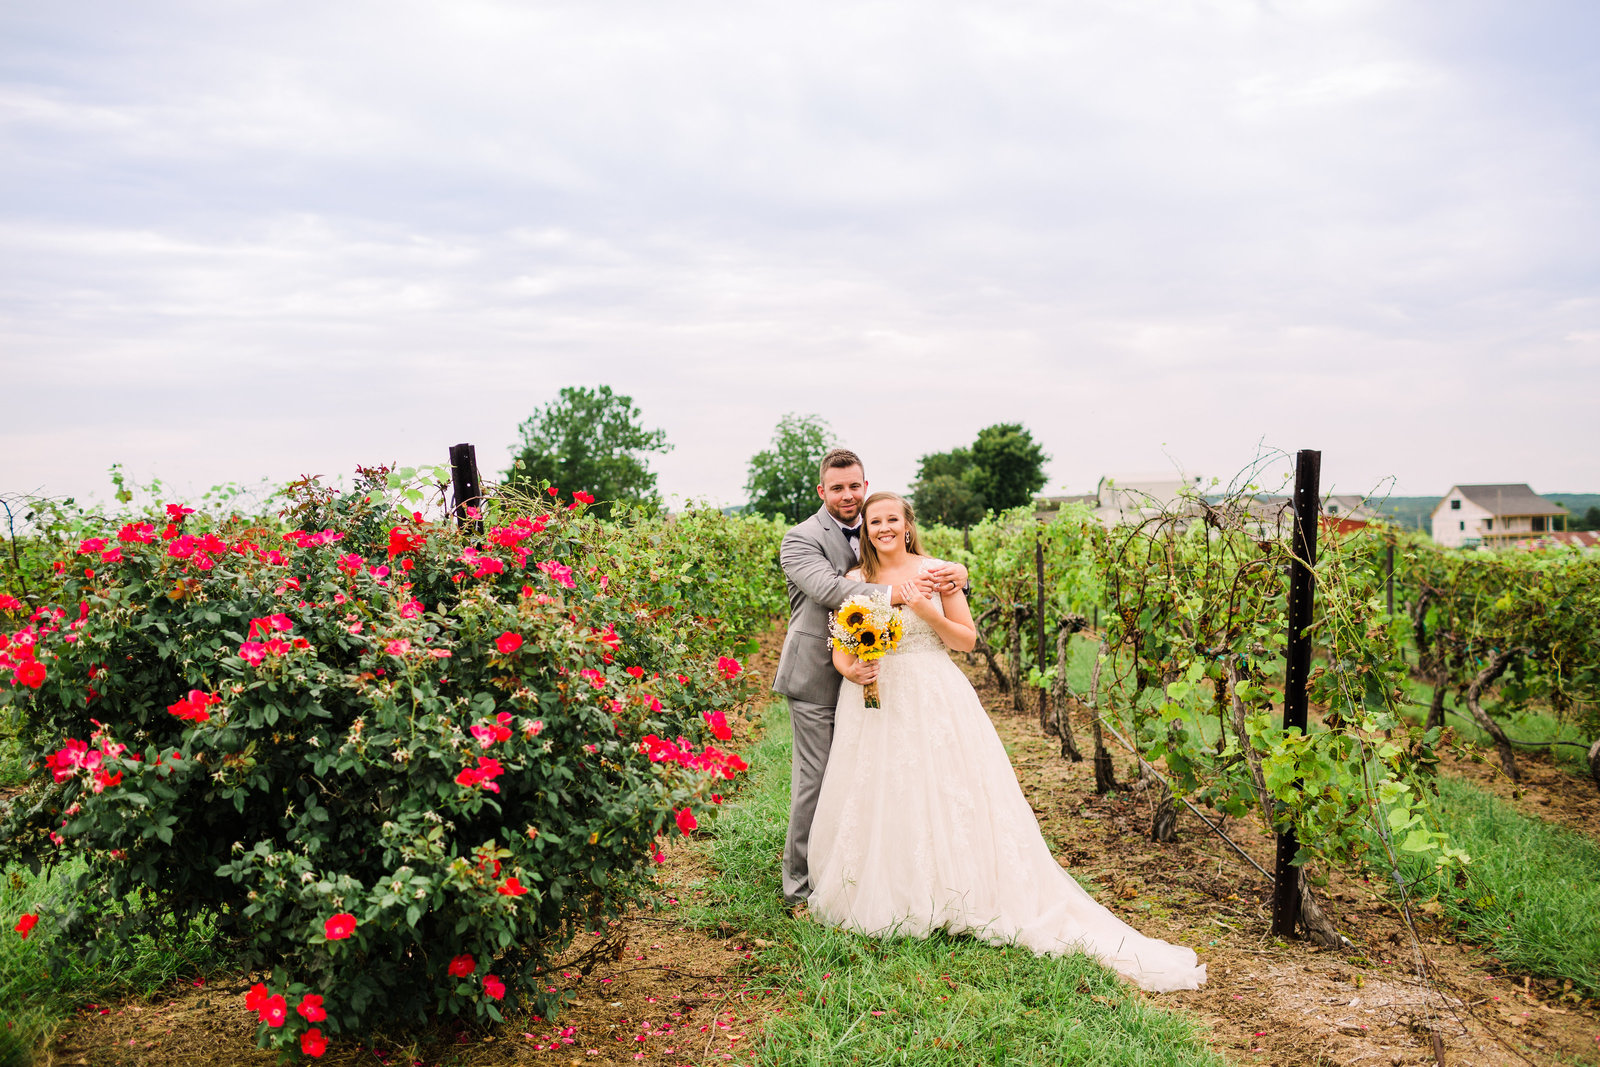 Bride and Groom, Whitney and Derik, pose in the vineyards with flowers to the side and a clear blue sky at Chaumette Winery.